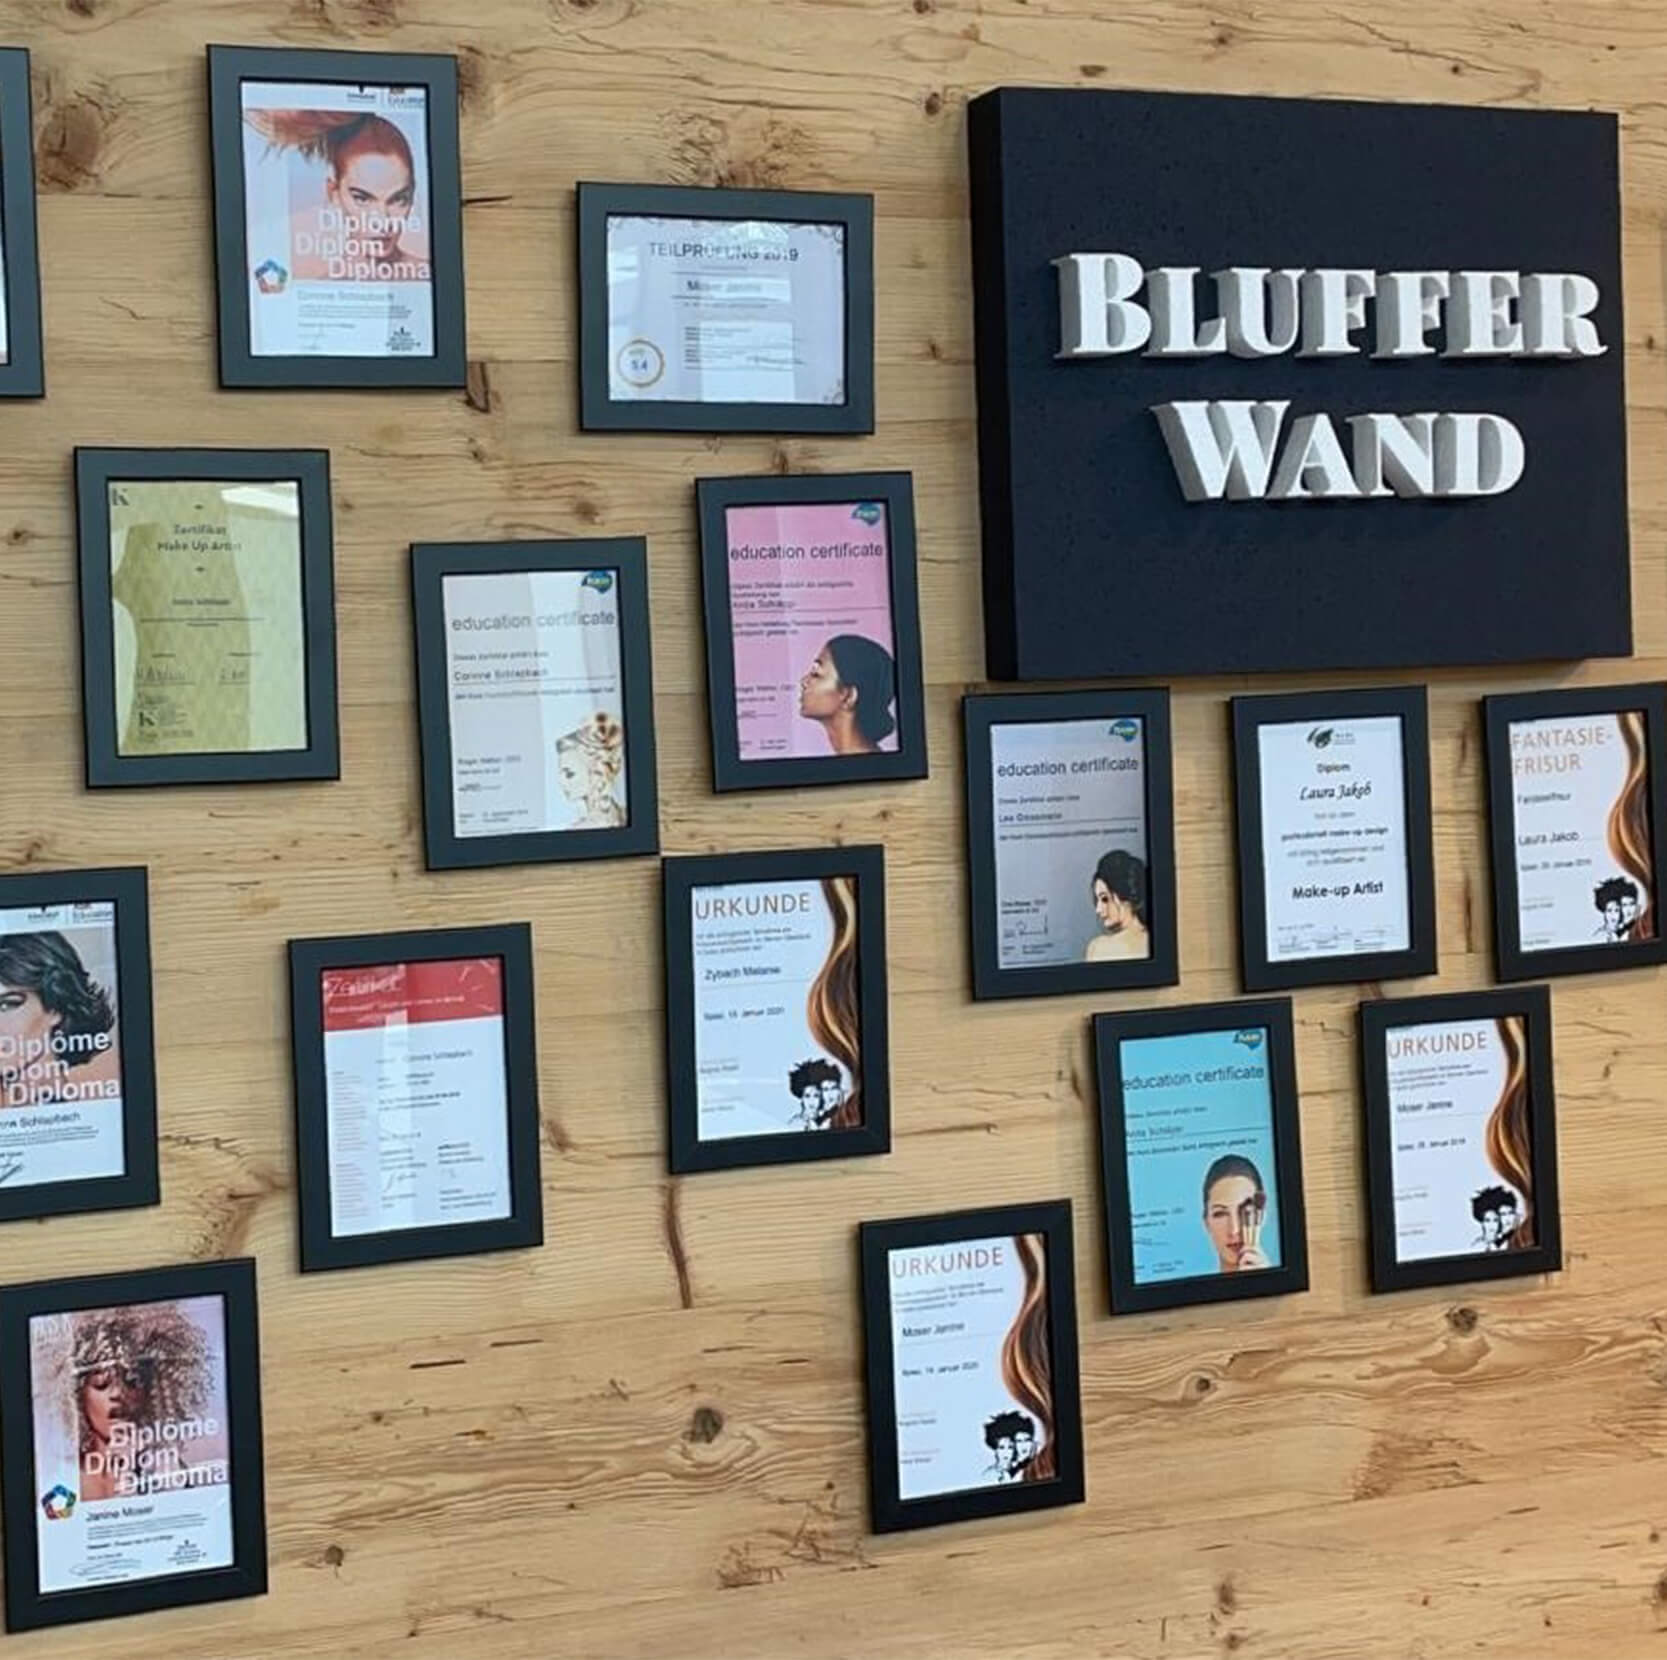 _0006_Blufferwand 1